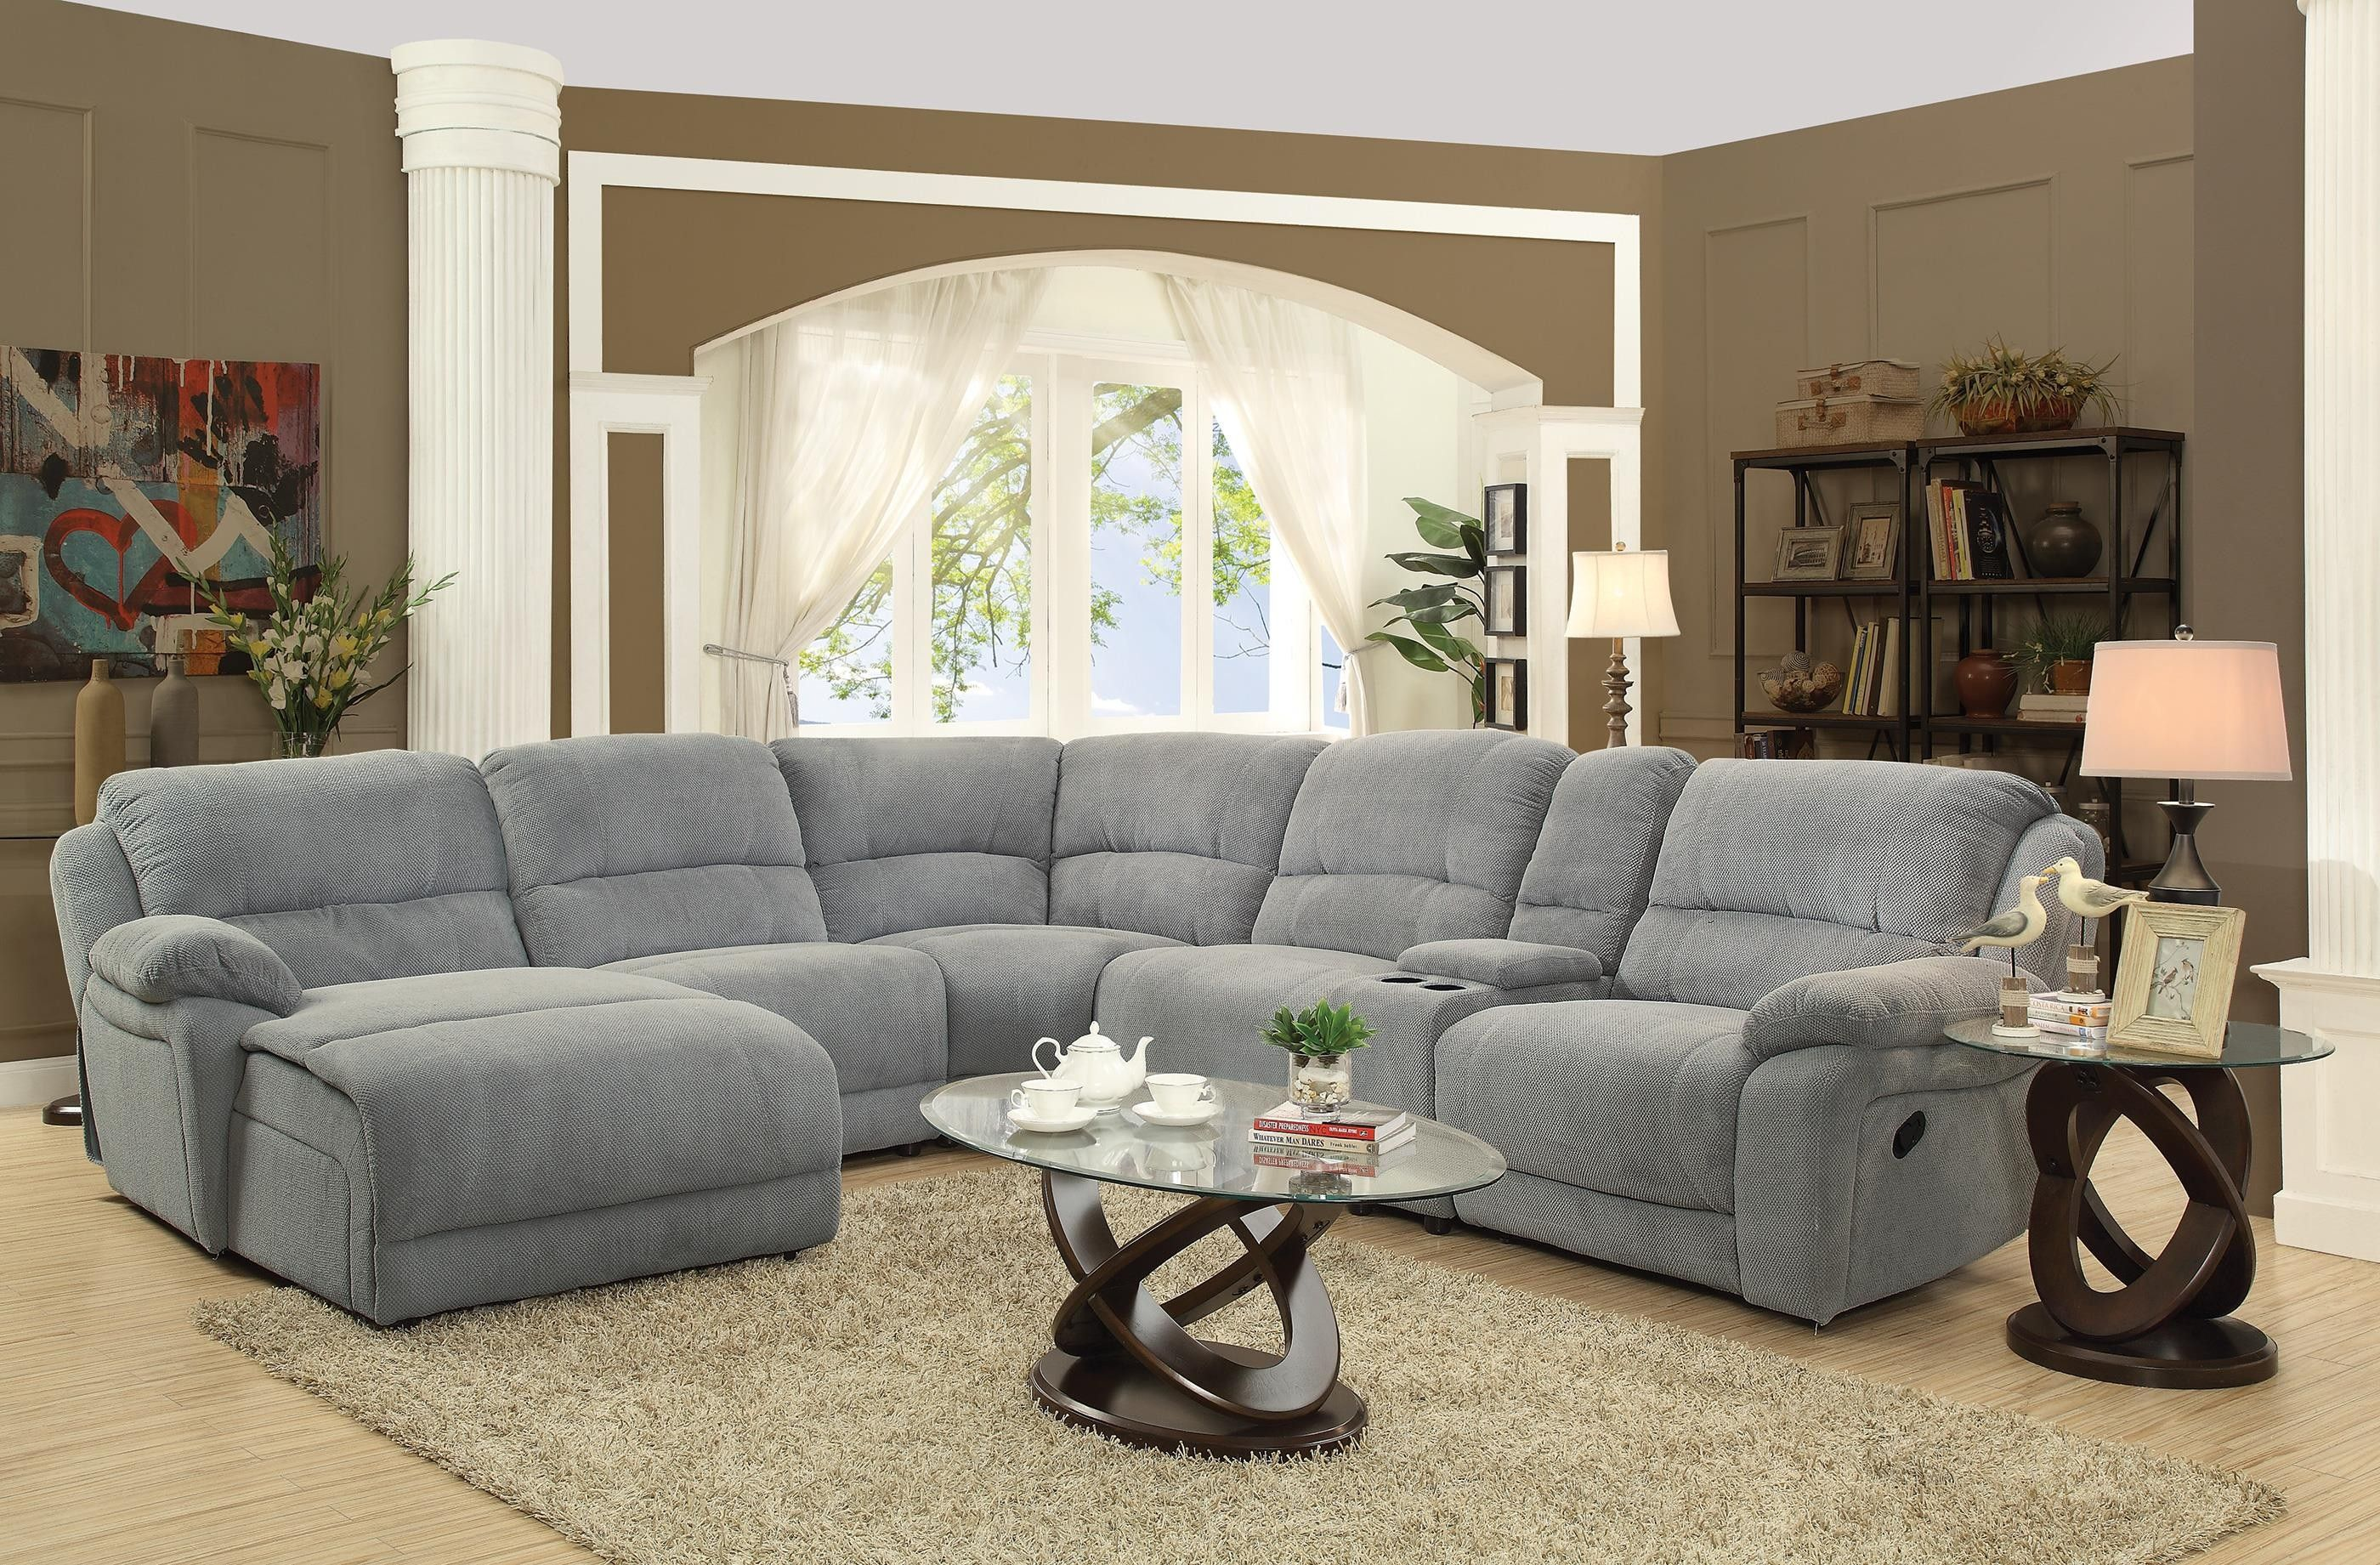 Mackenzie Motion Silver Chenille Sectional Sofa Recliner Set 600017 by Coaster : coaster furniture sectional - Sectionals, Sofas & Couches